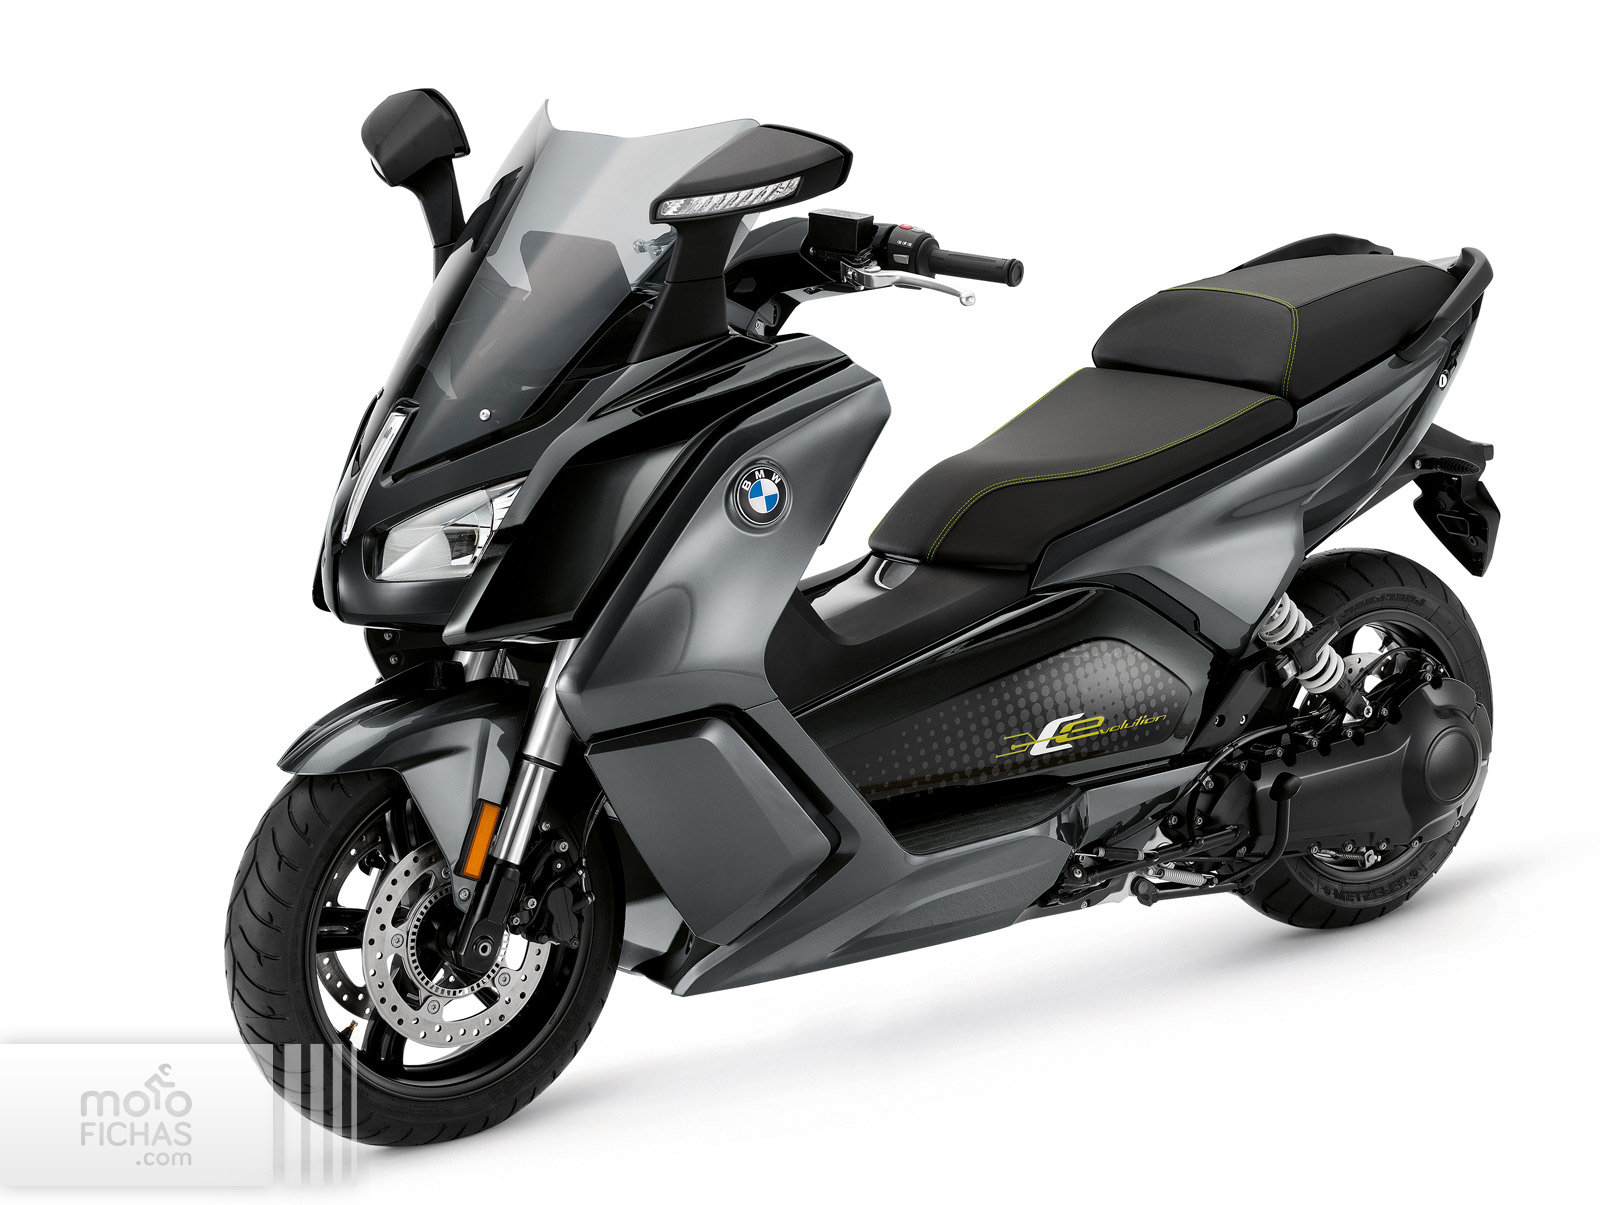 fotos bmw c evolution carnet a1 b 2017 2019 galer a y. Black Bedroom Furniture Sets. Home Design Ideas